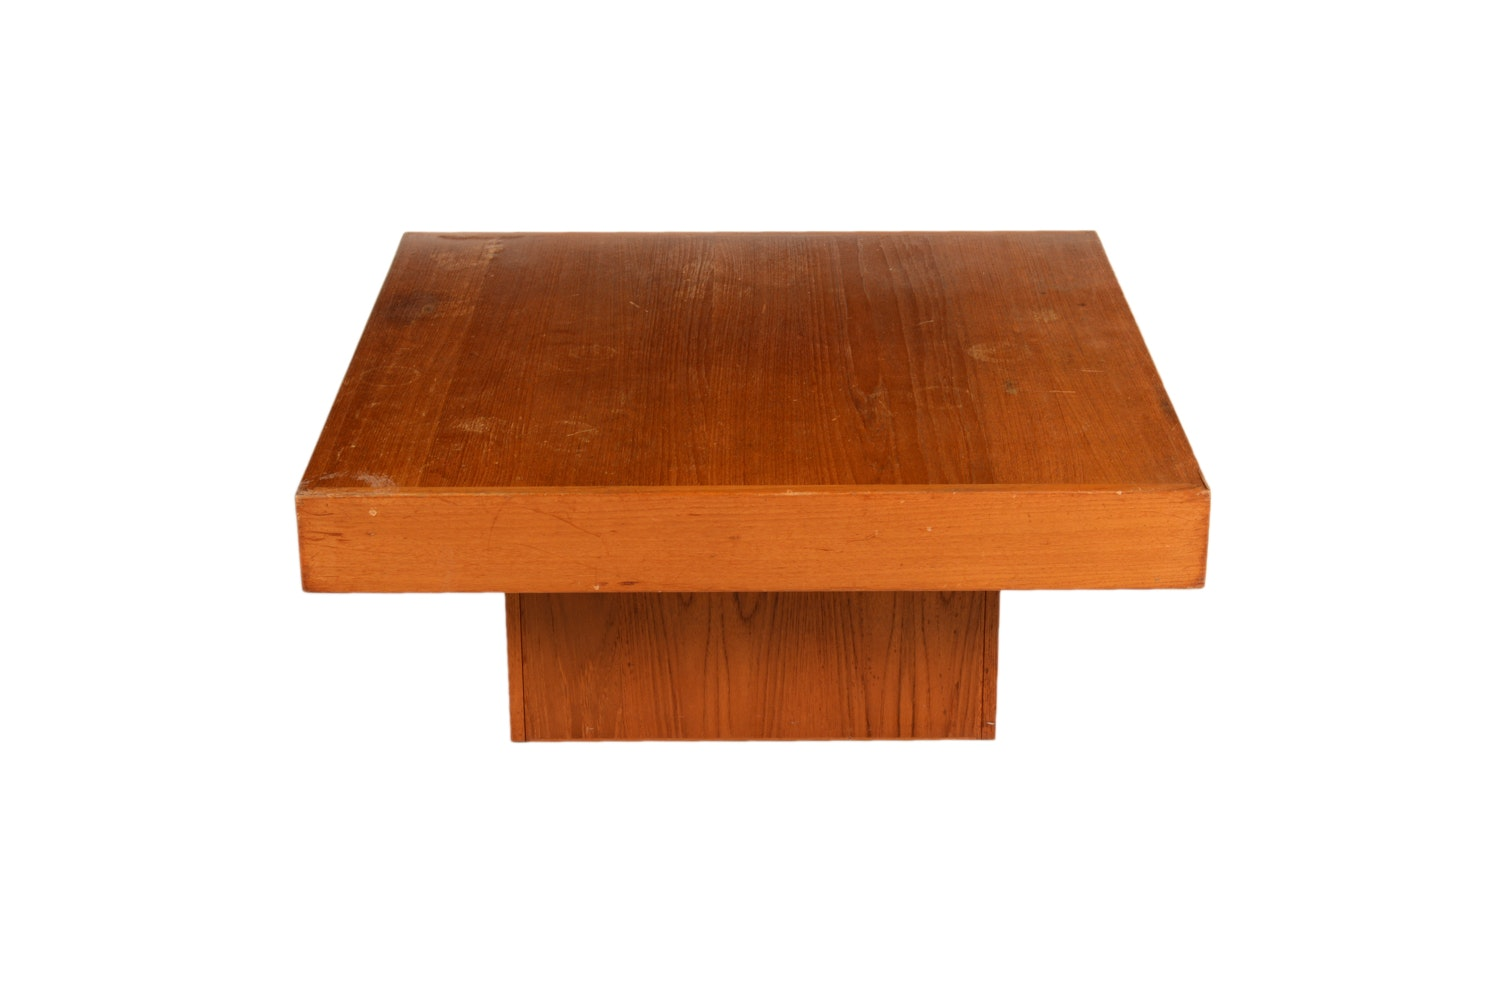 Danish Modern Teak Coffee Table by Trioh, Mid 20th Century